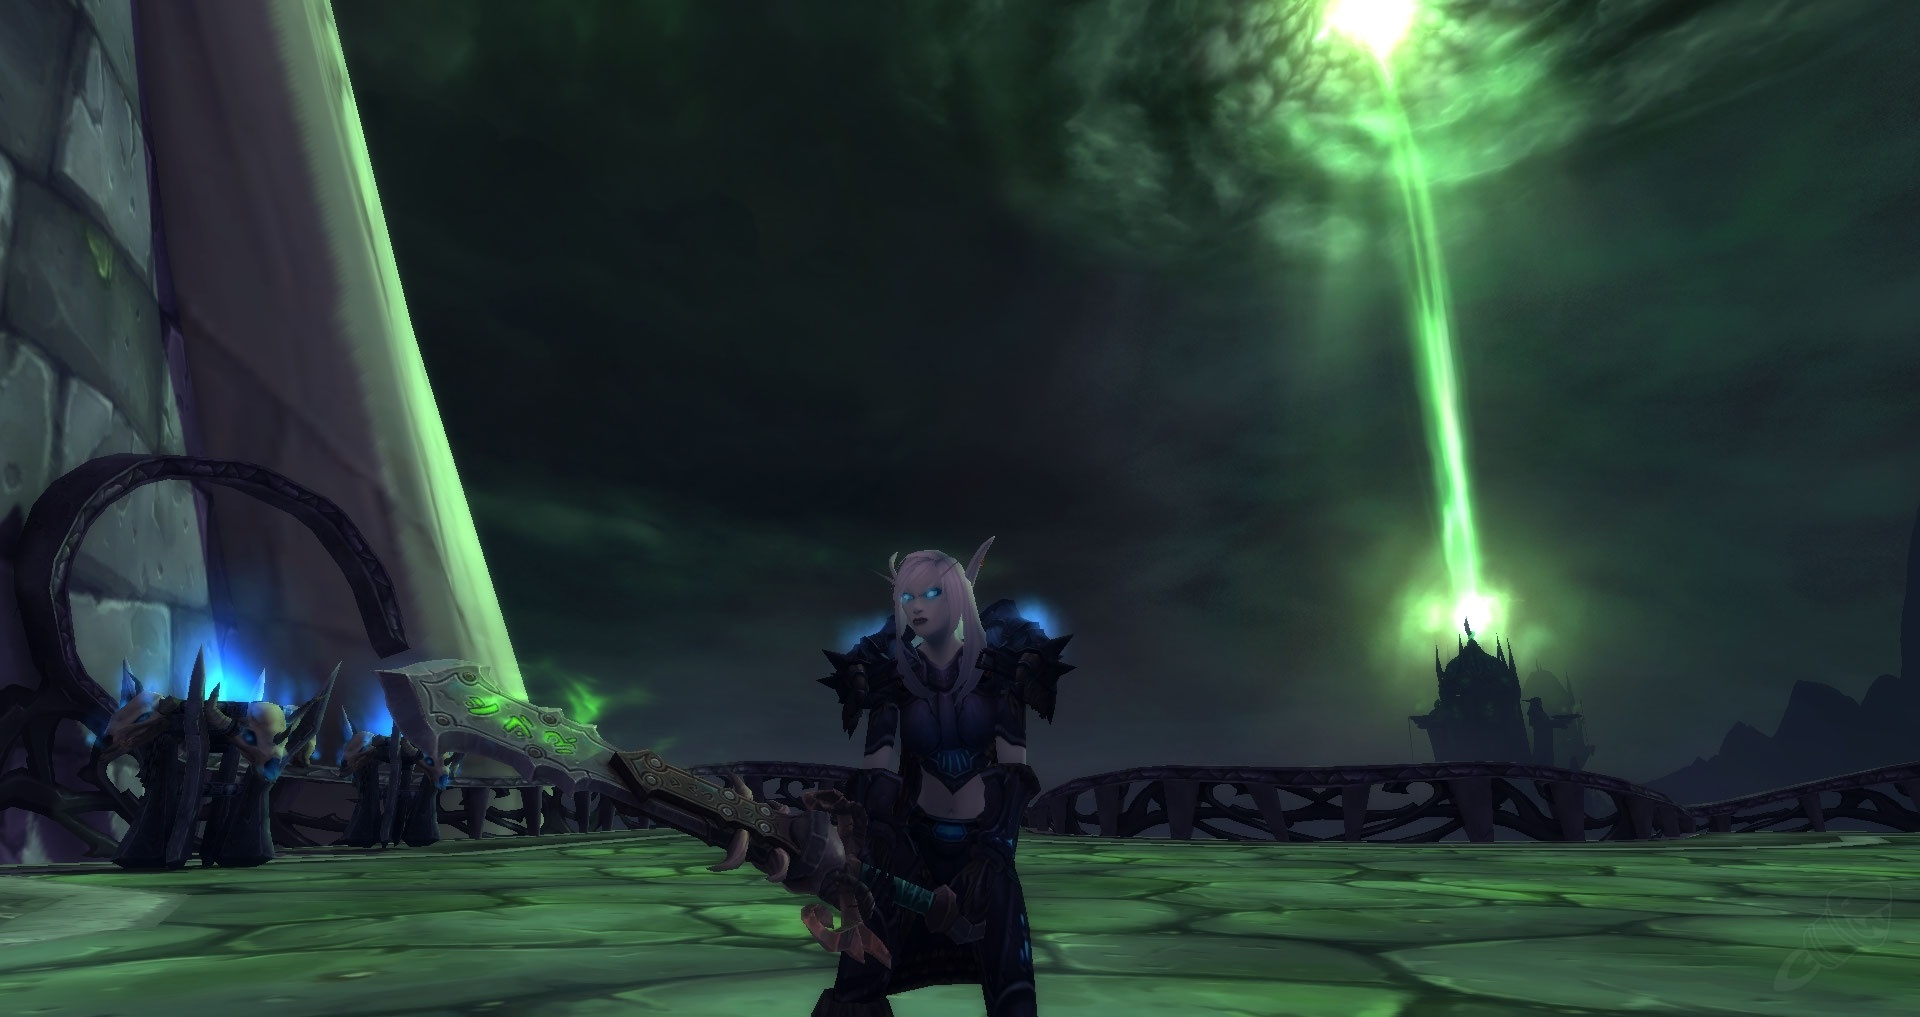 Unholy Death Knight Artifact Weapon: Apocalypse - Guides - Wowhead